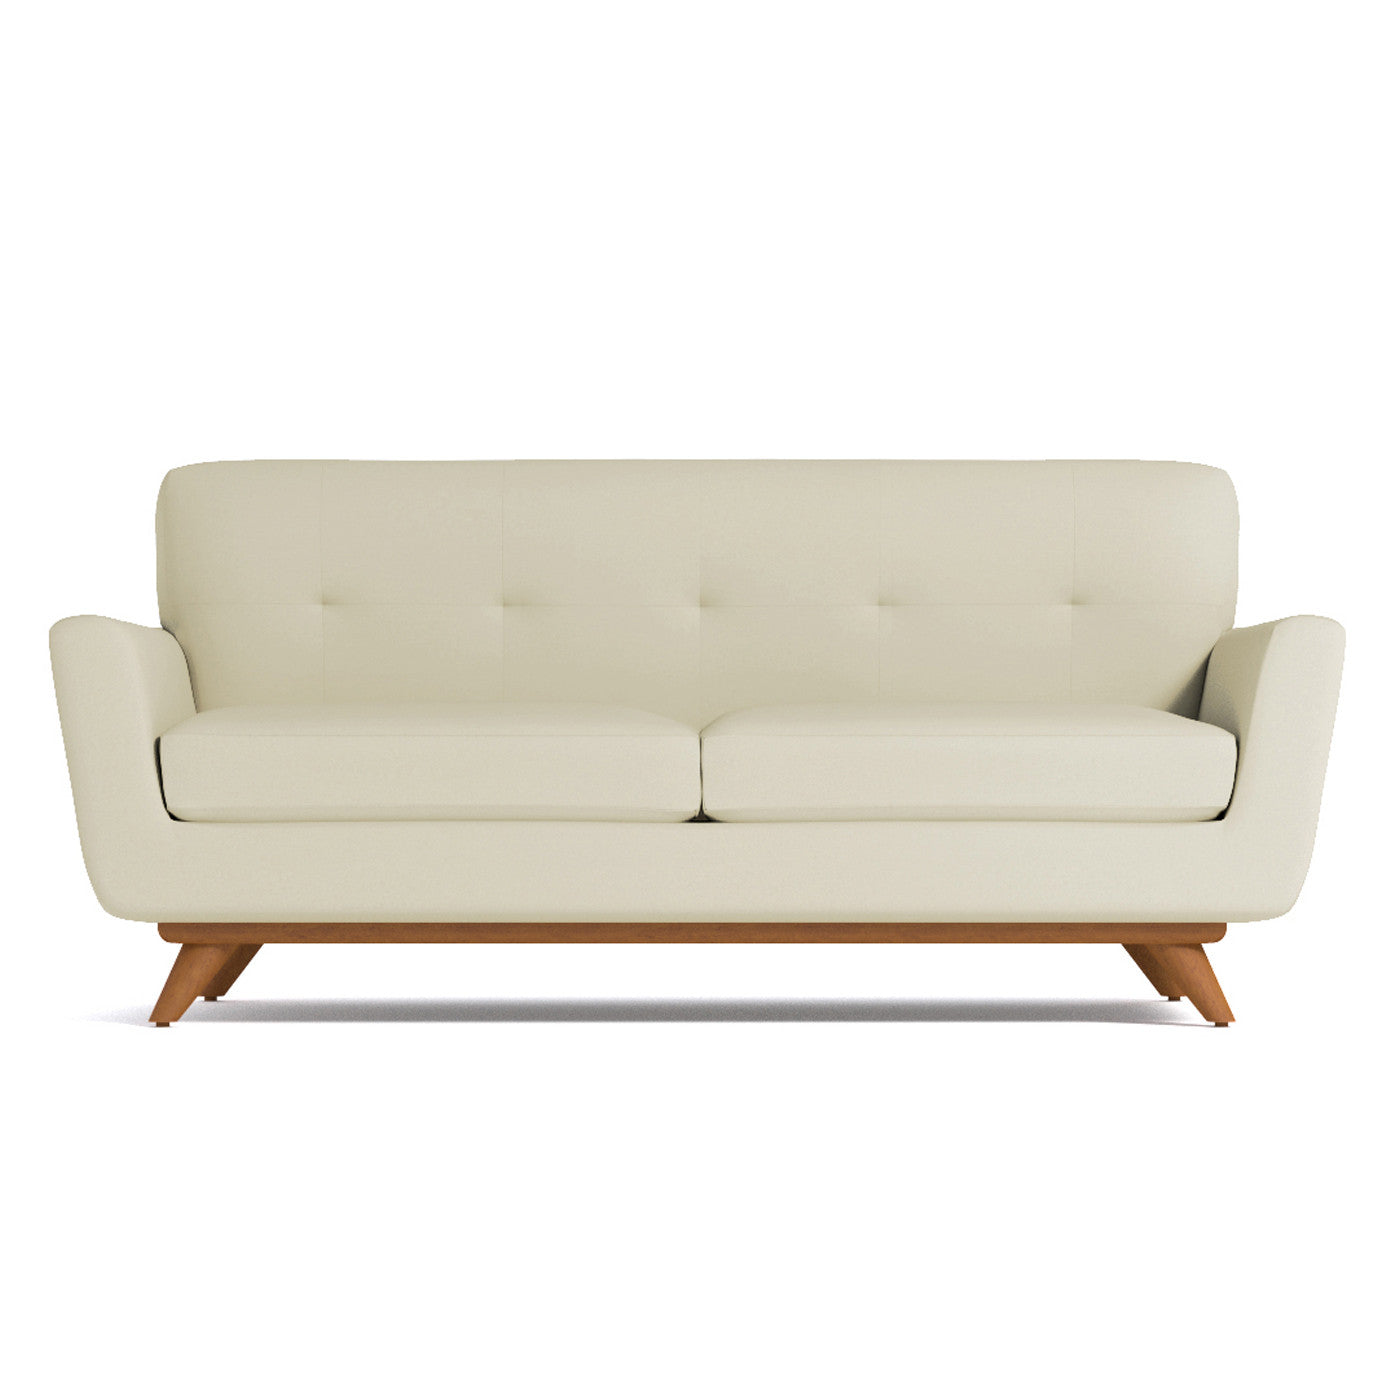 Apartment Size Sofa - Carson - Furniture Outlet - Apt2B